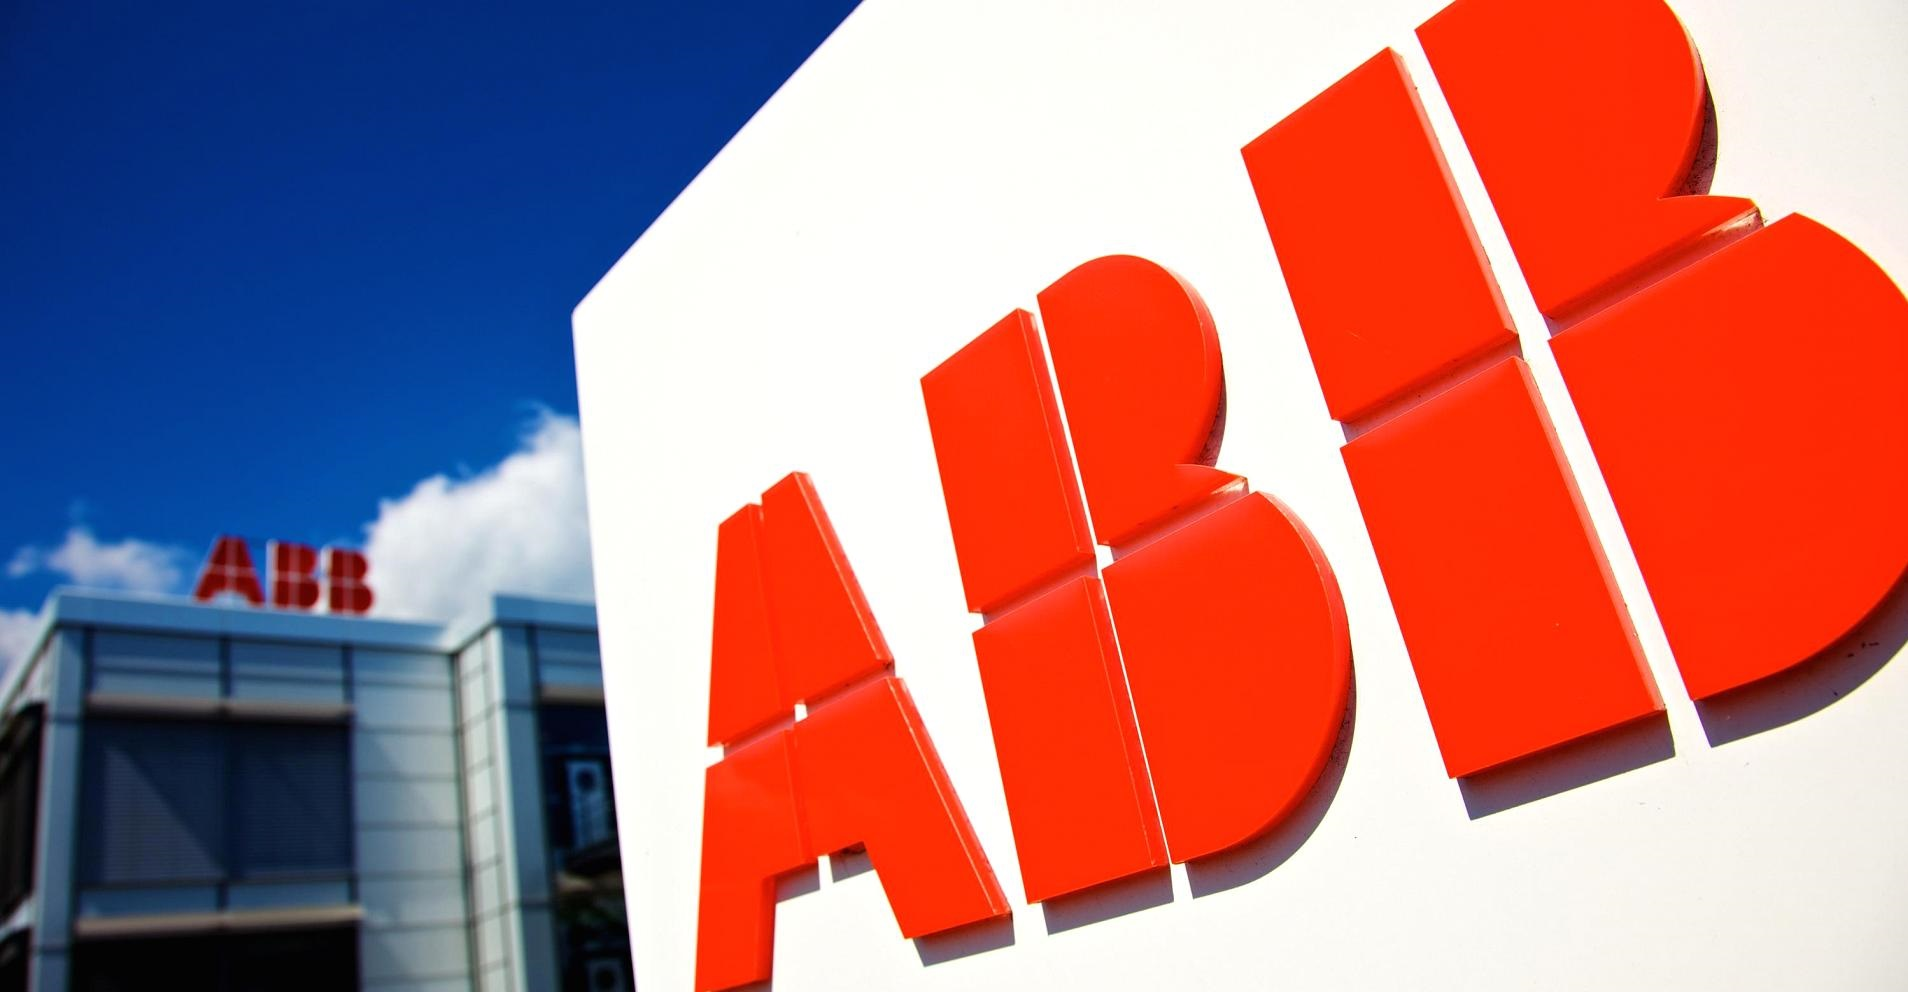 Case Study Analysis of Rebuilding ABB | ABB Organizational